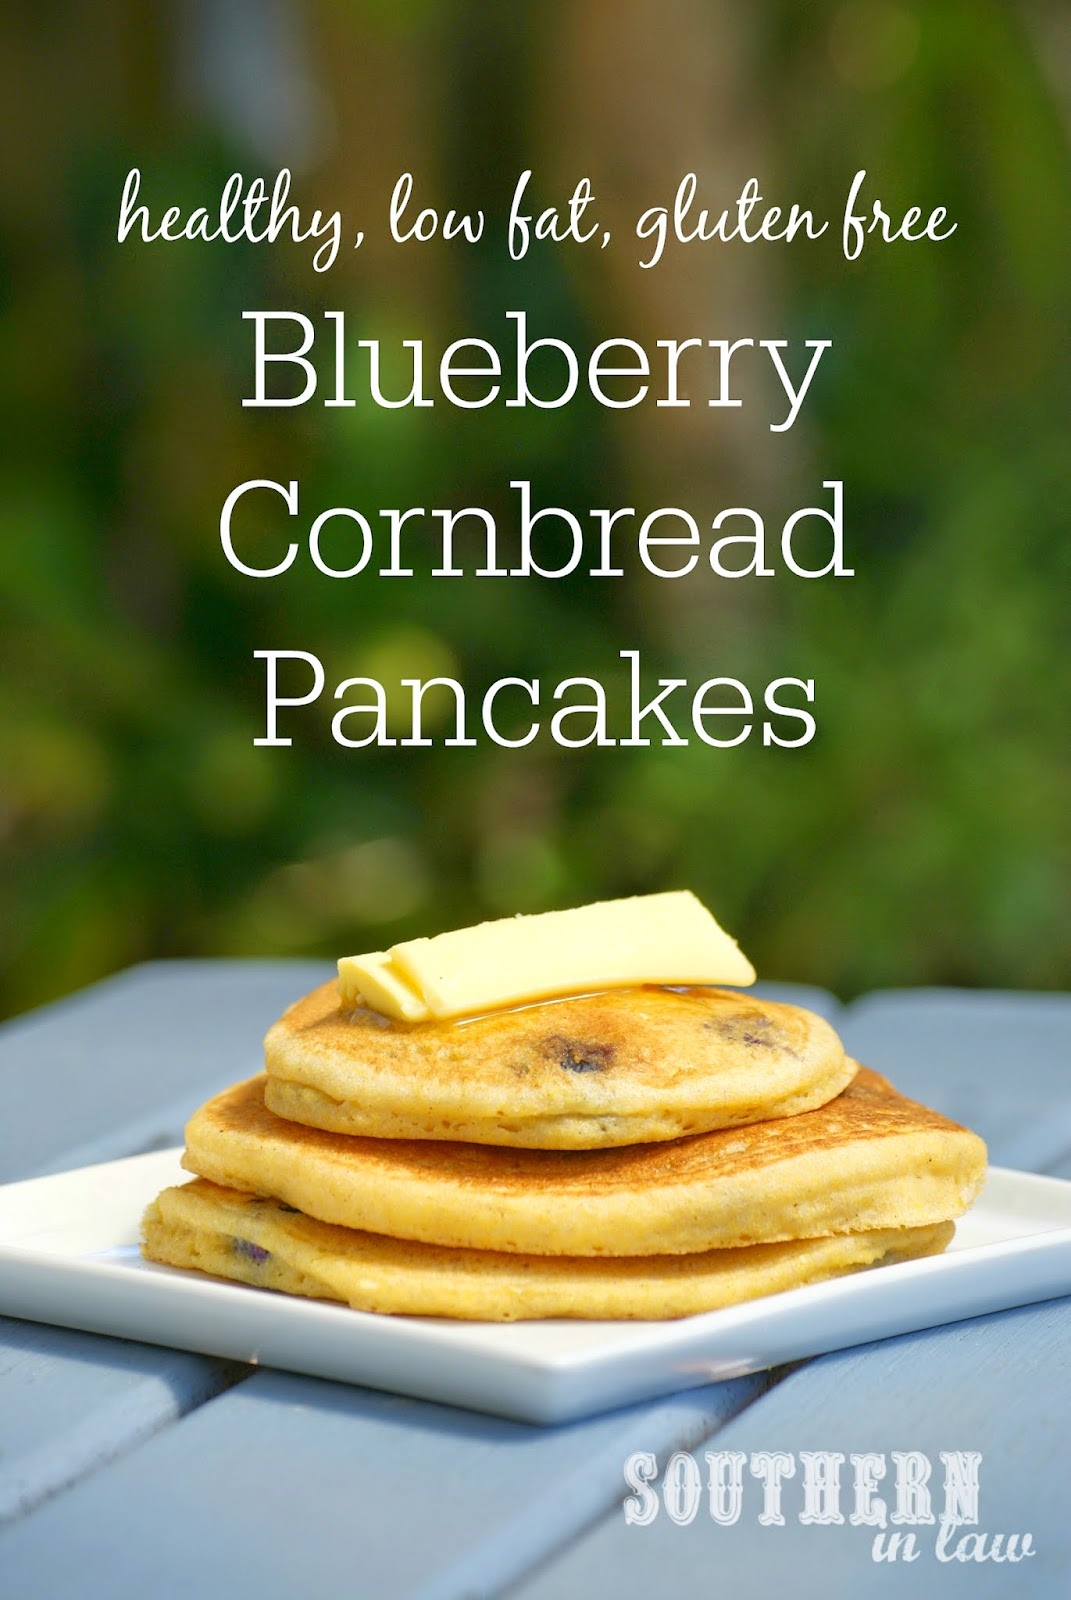 Healthy Blueberry Cornbread Pancakes Recipe | gluten free, low fat, healthy, low sugar, clean eating friendly